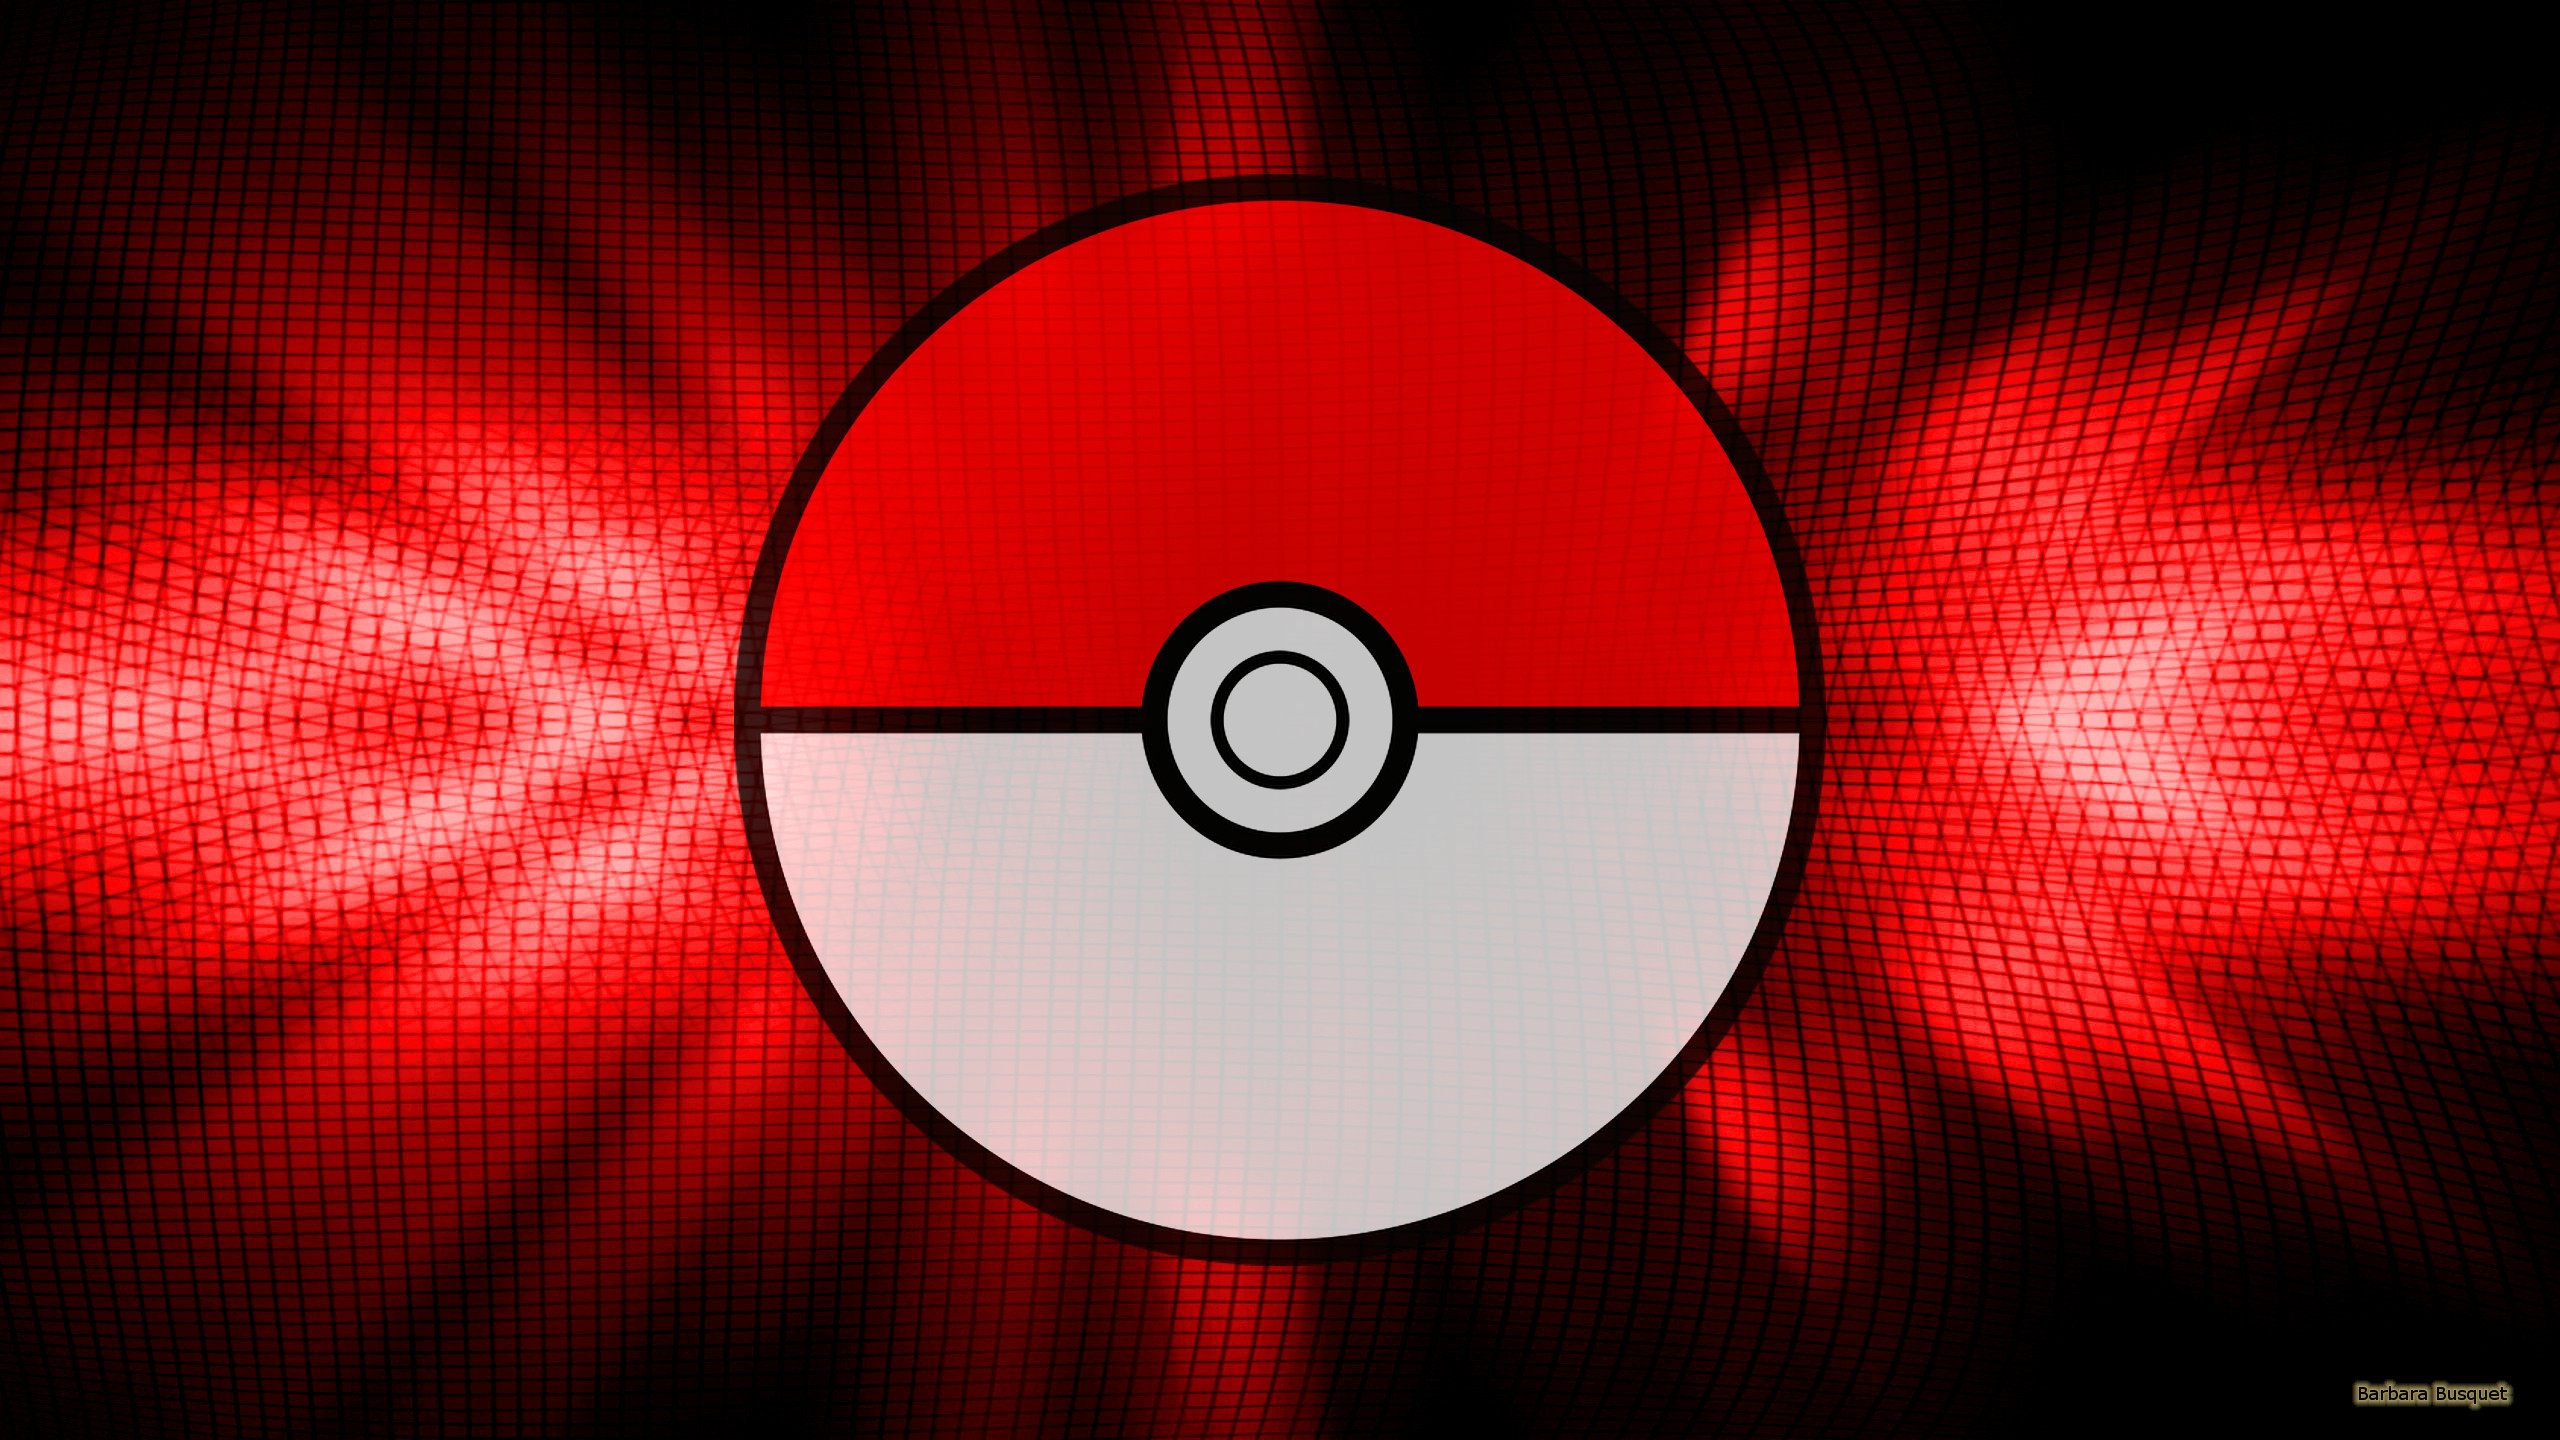 Black red Pokemon GO wallpaper with a pokeball.